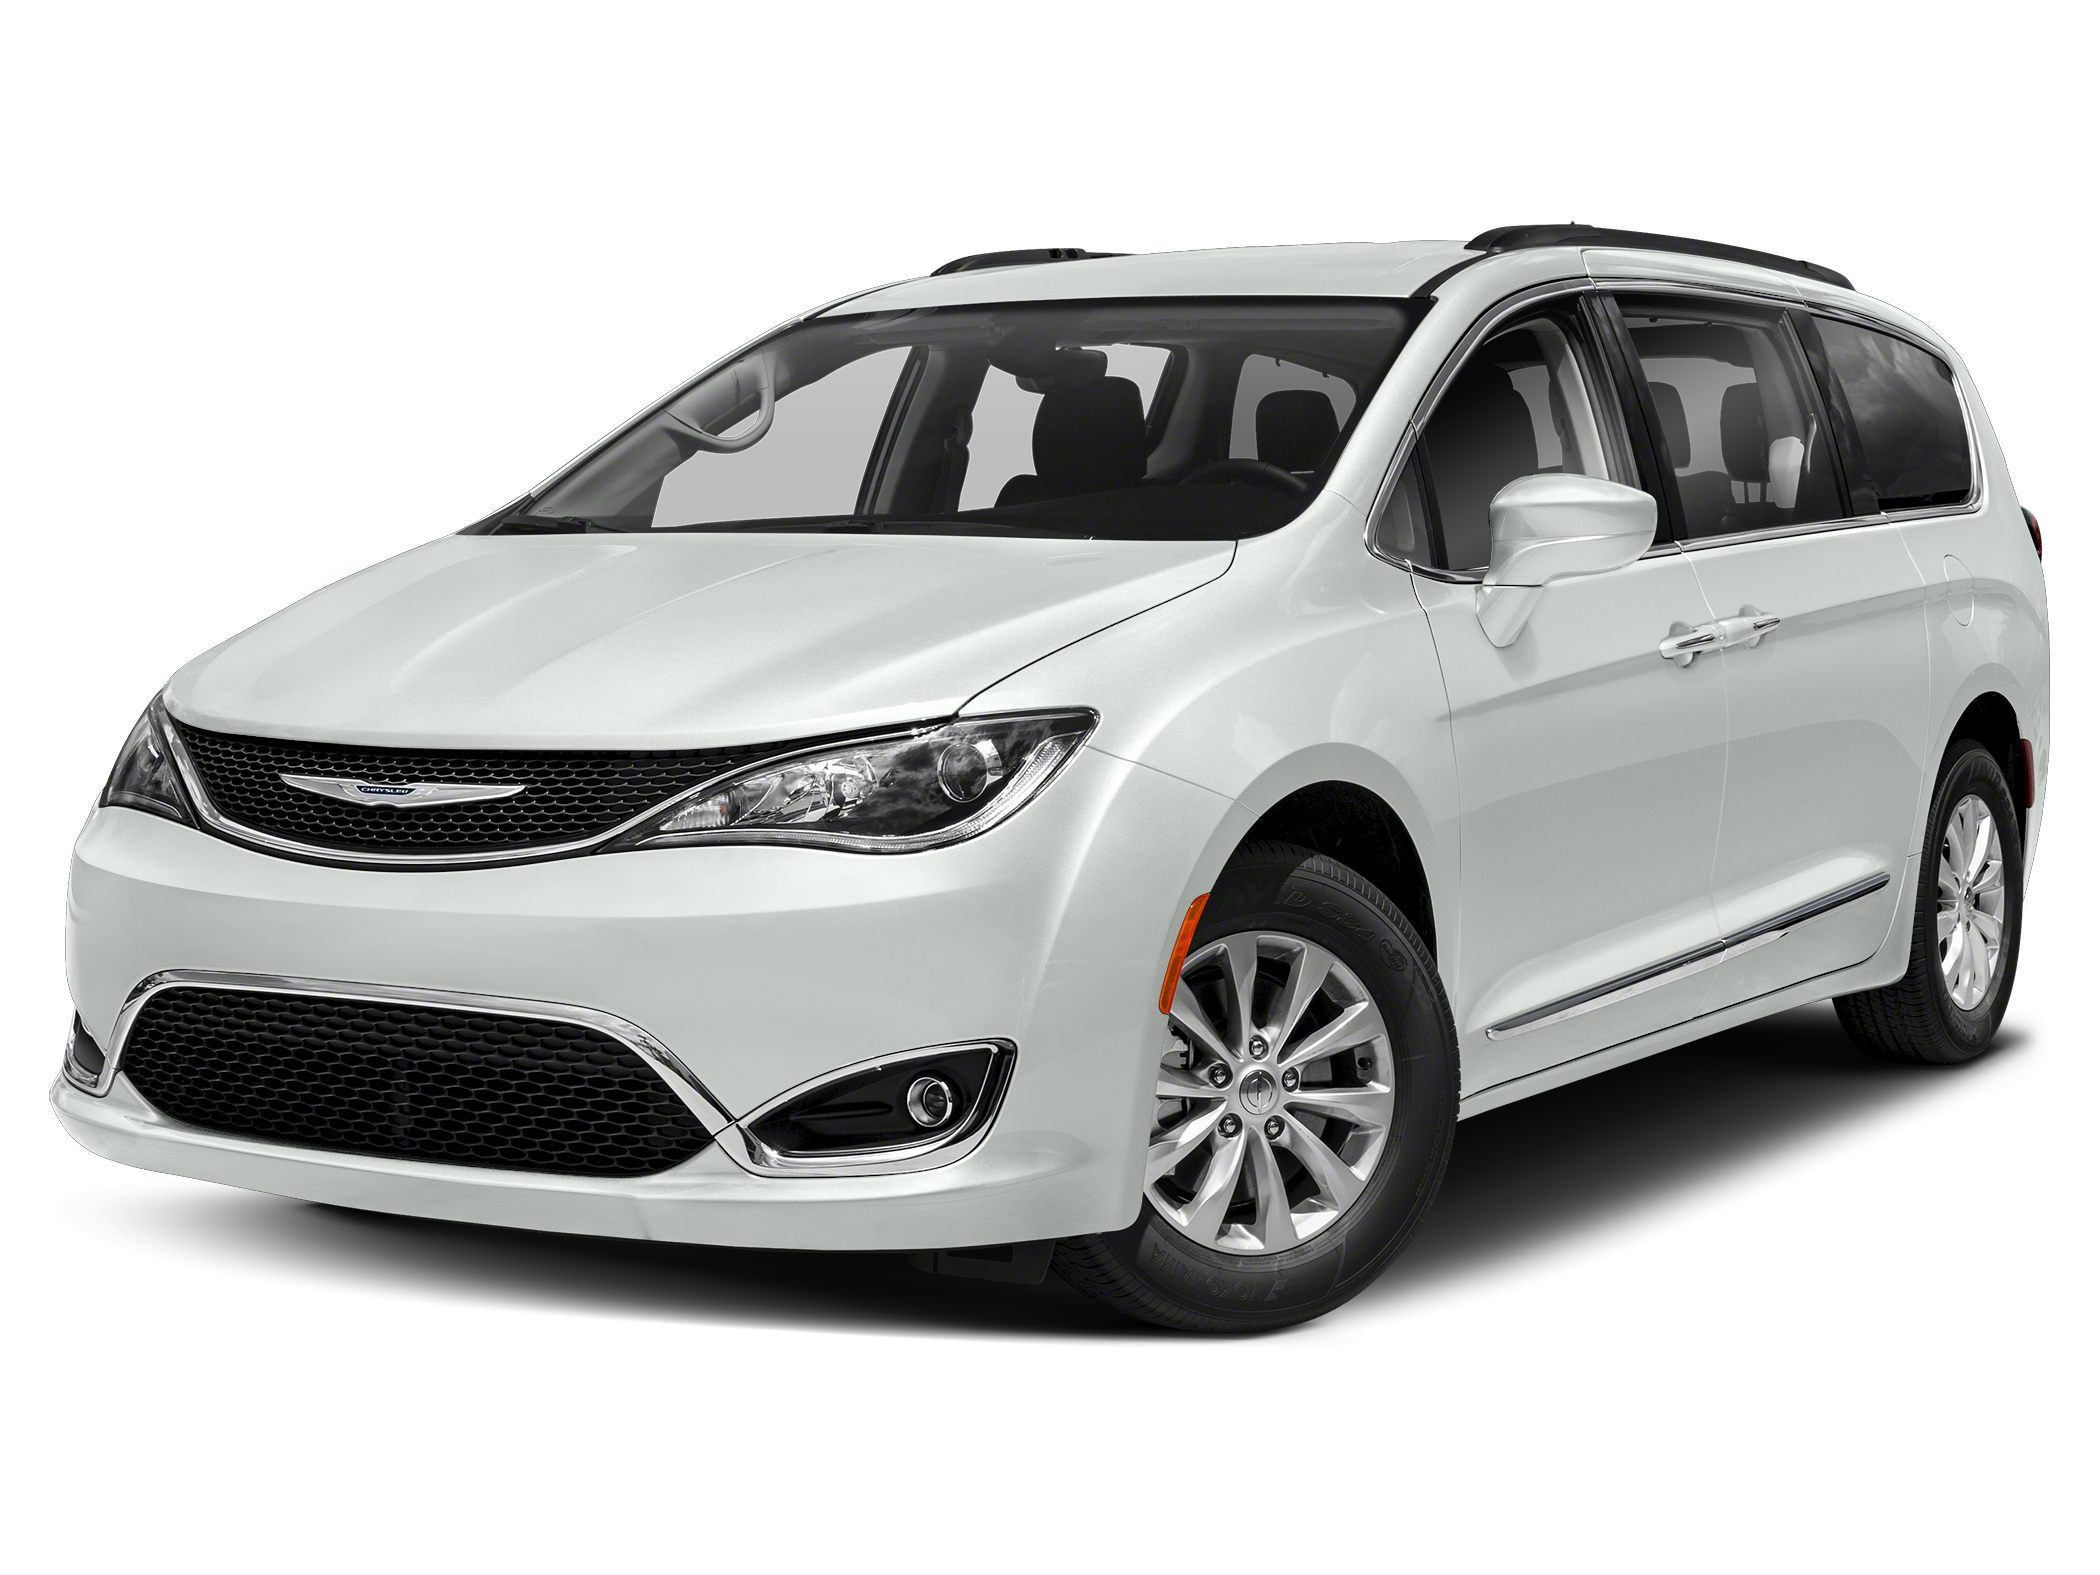 used 2020 Chrysler Pacifica car, priced at $51,500